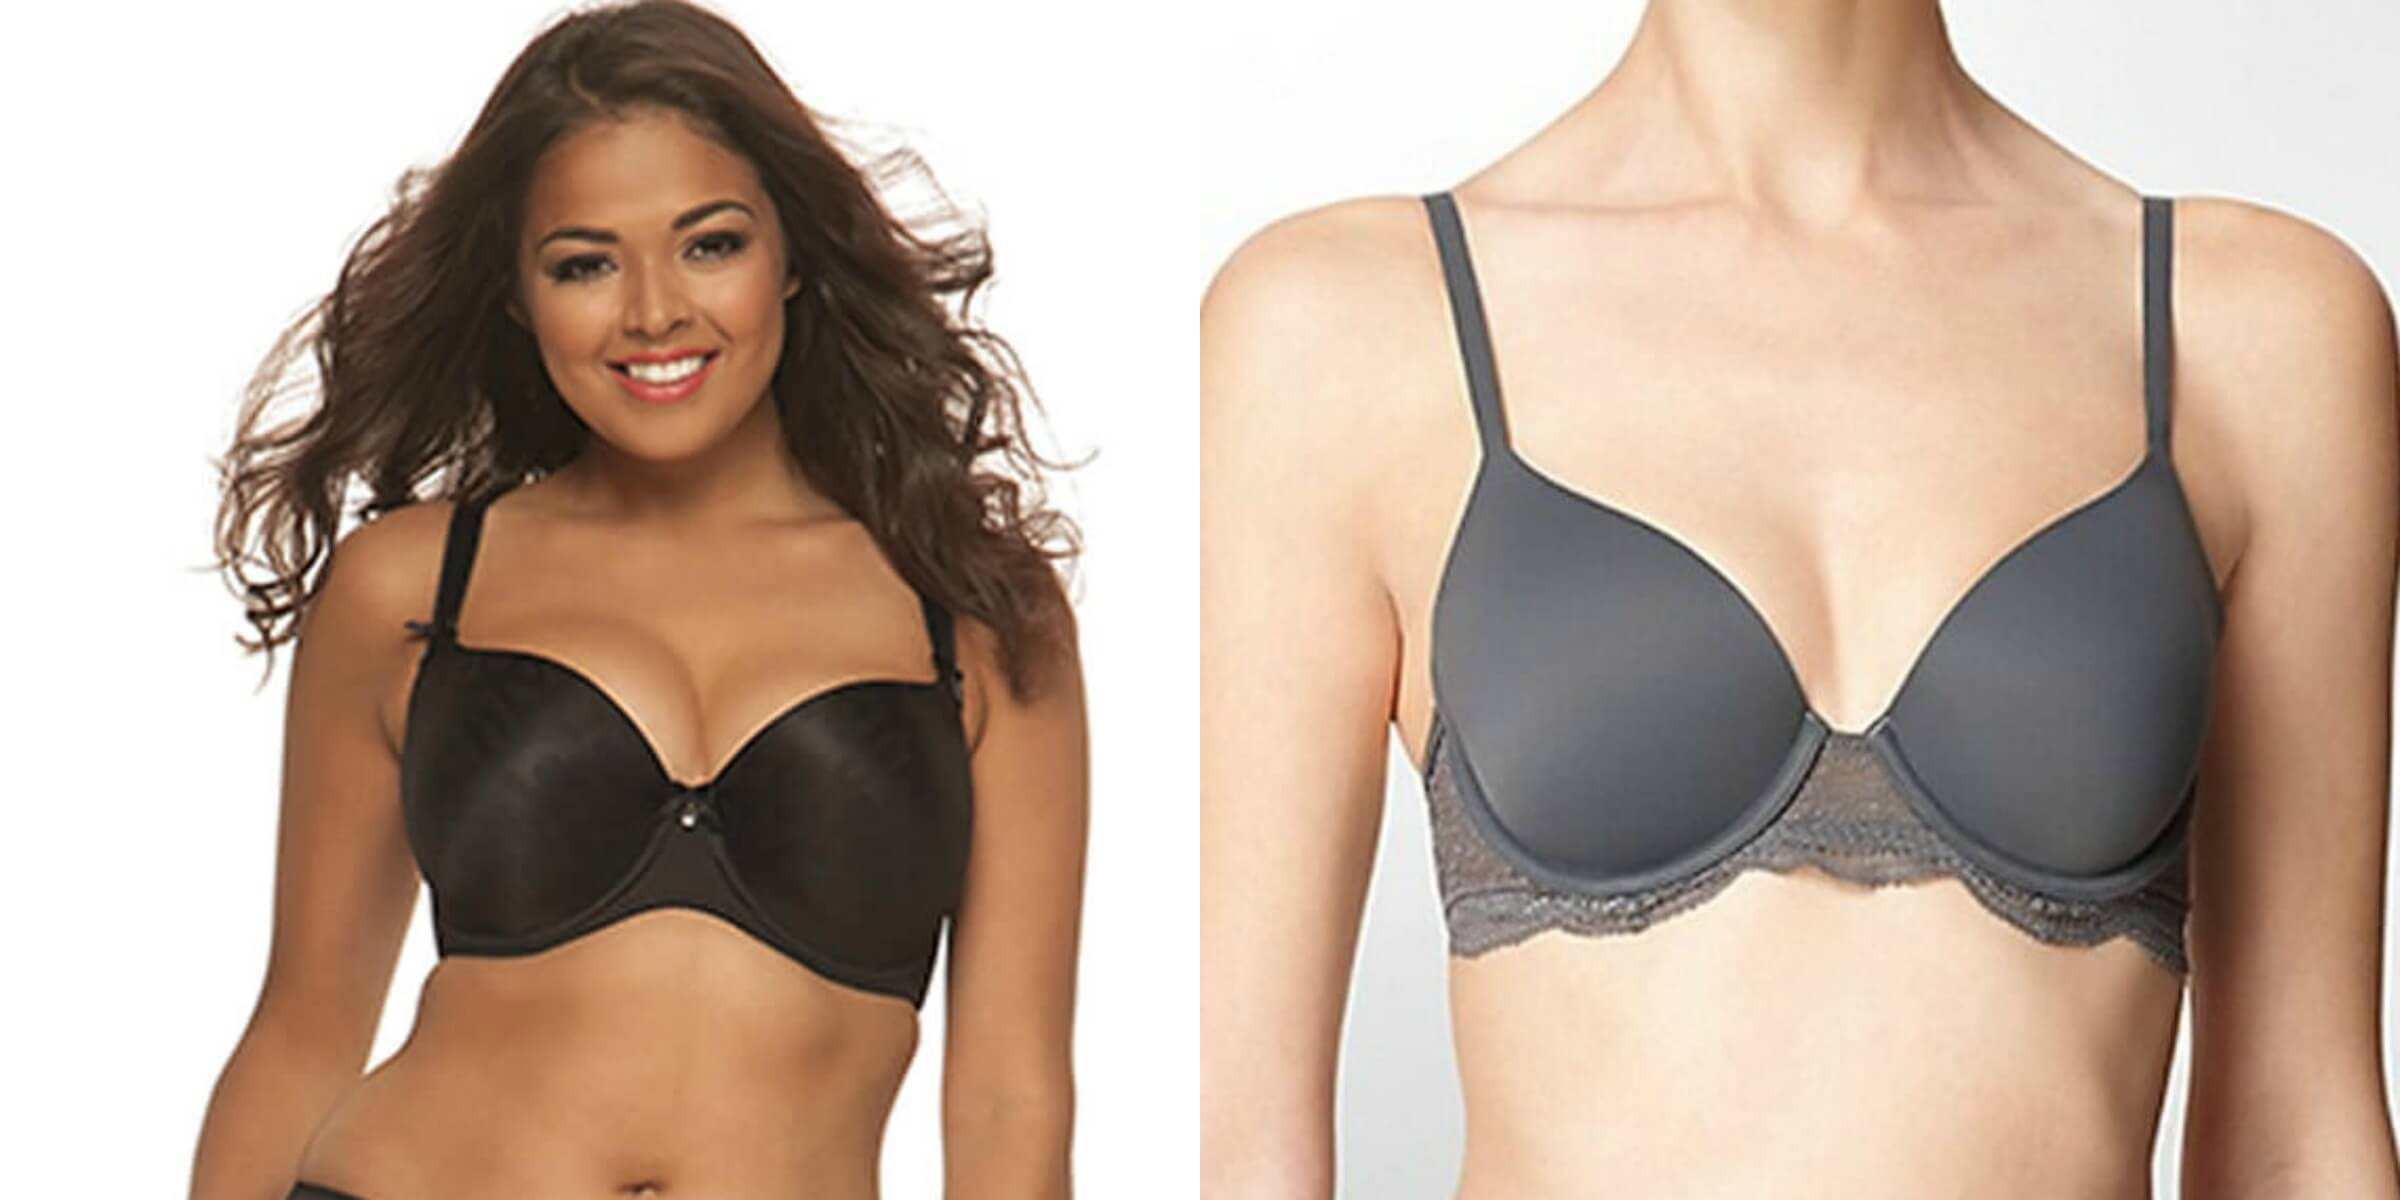 Smoothie Seamless Microfiber Moulded Balcony Bra by Curvy Kate; Perfectly Fit With Lace T-Shirt Bra by Calvin Klein